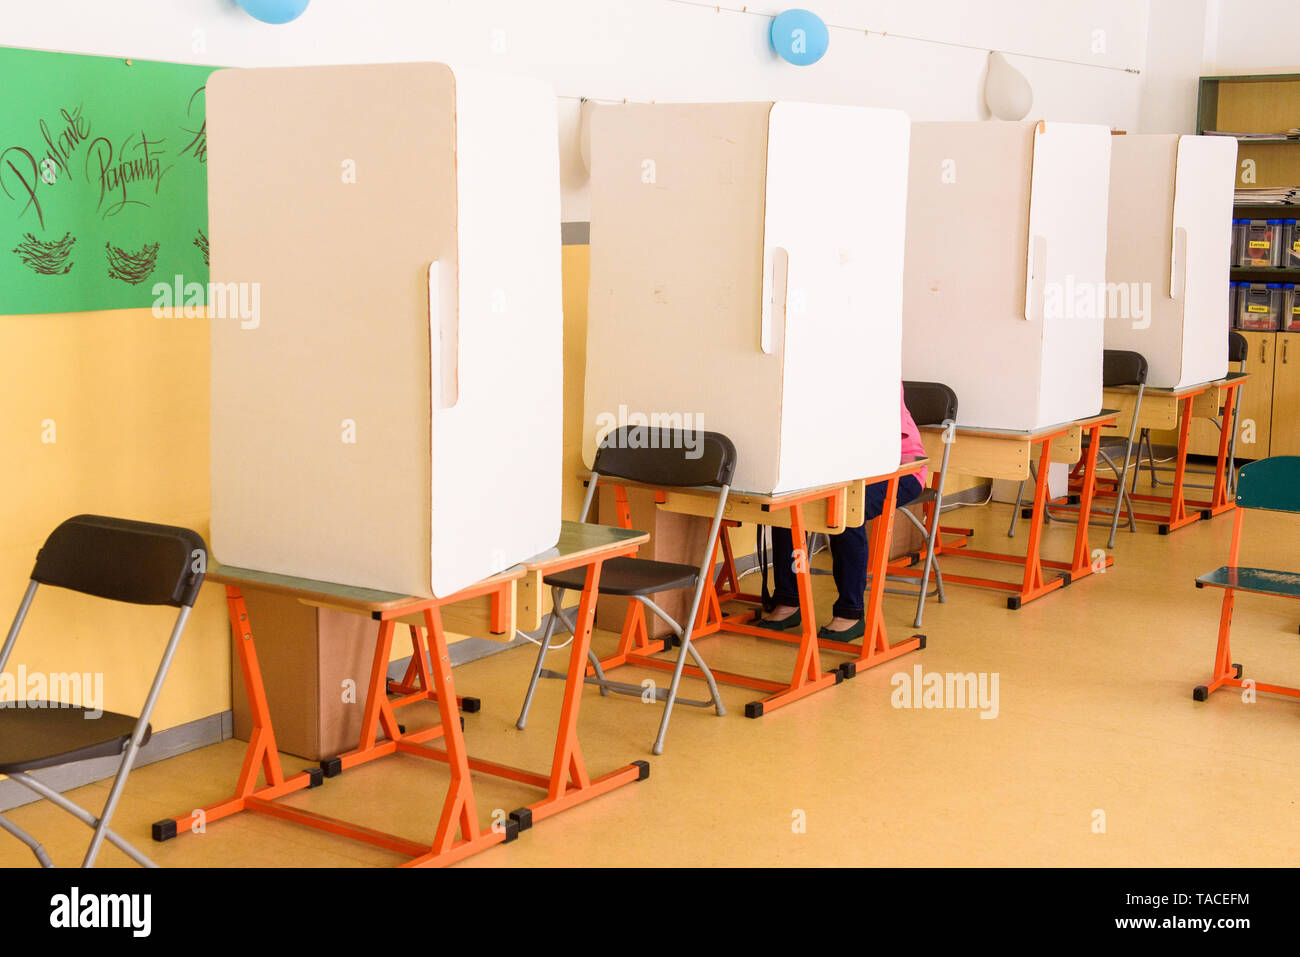 Riga, Latvia. 23rd May, 2019. Tables for Early voting at 2019 European Parliament Election in Latvia. Credit: Gints Ivuskans/Alamy Live News - Stock Image